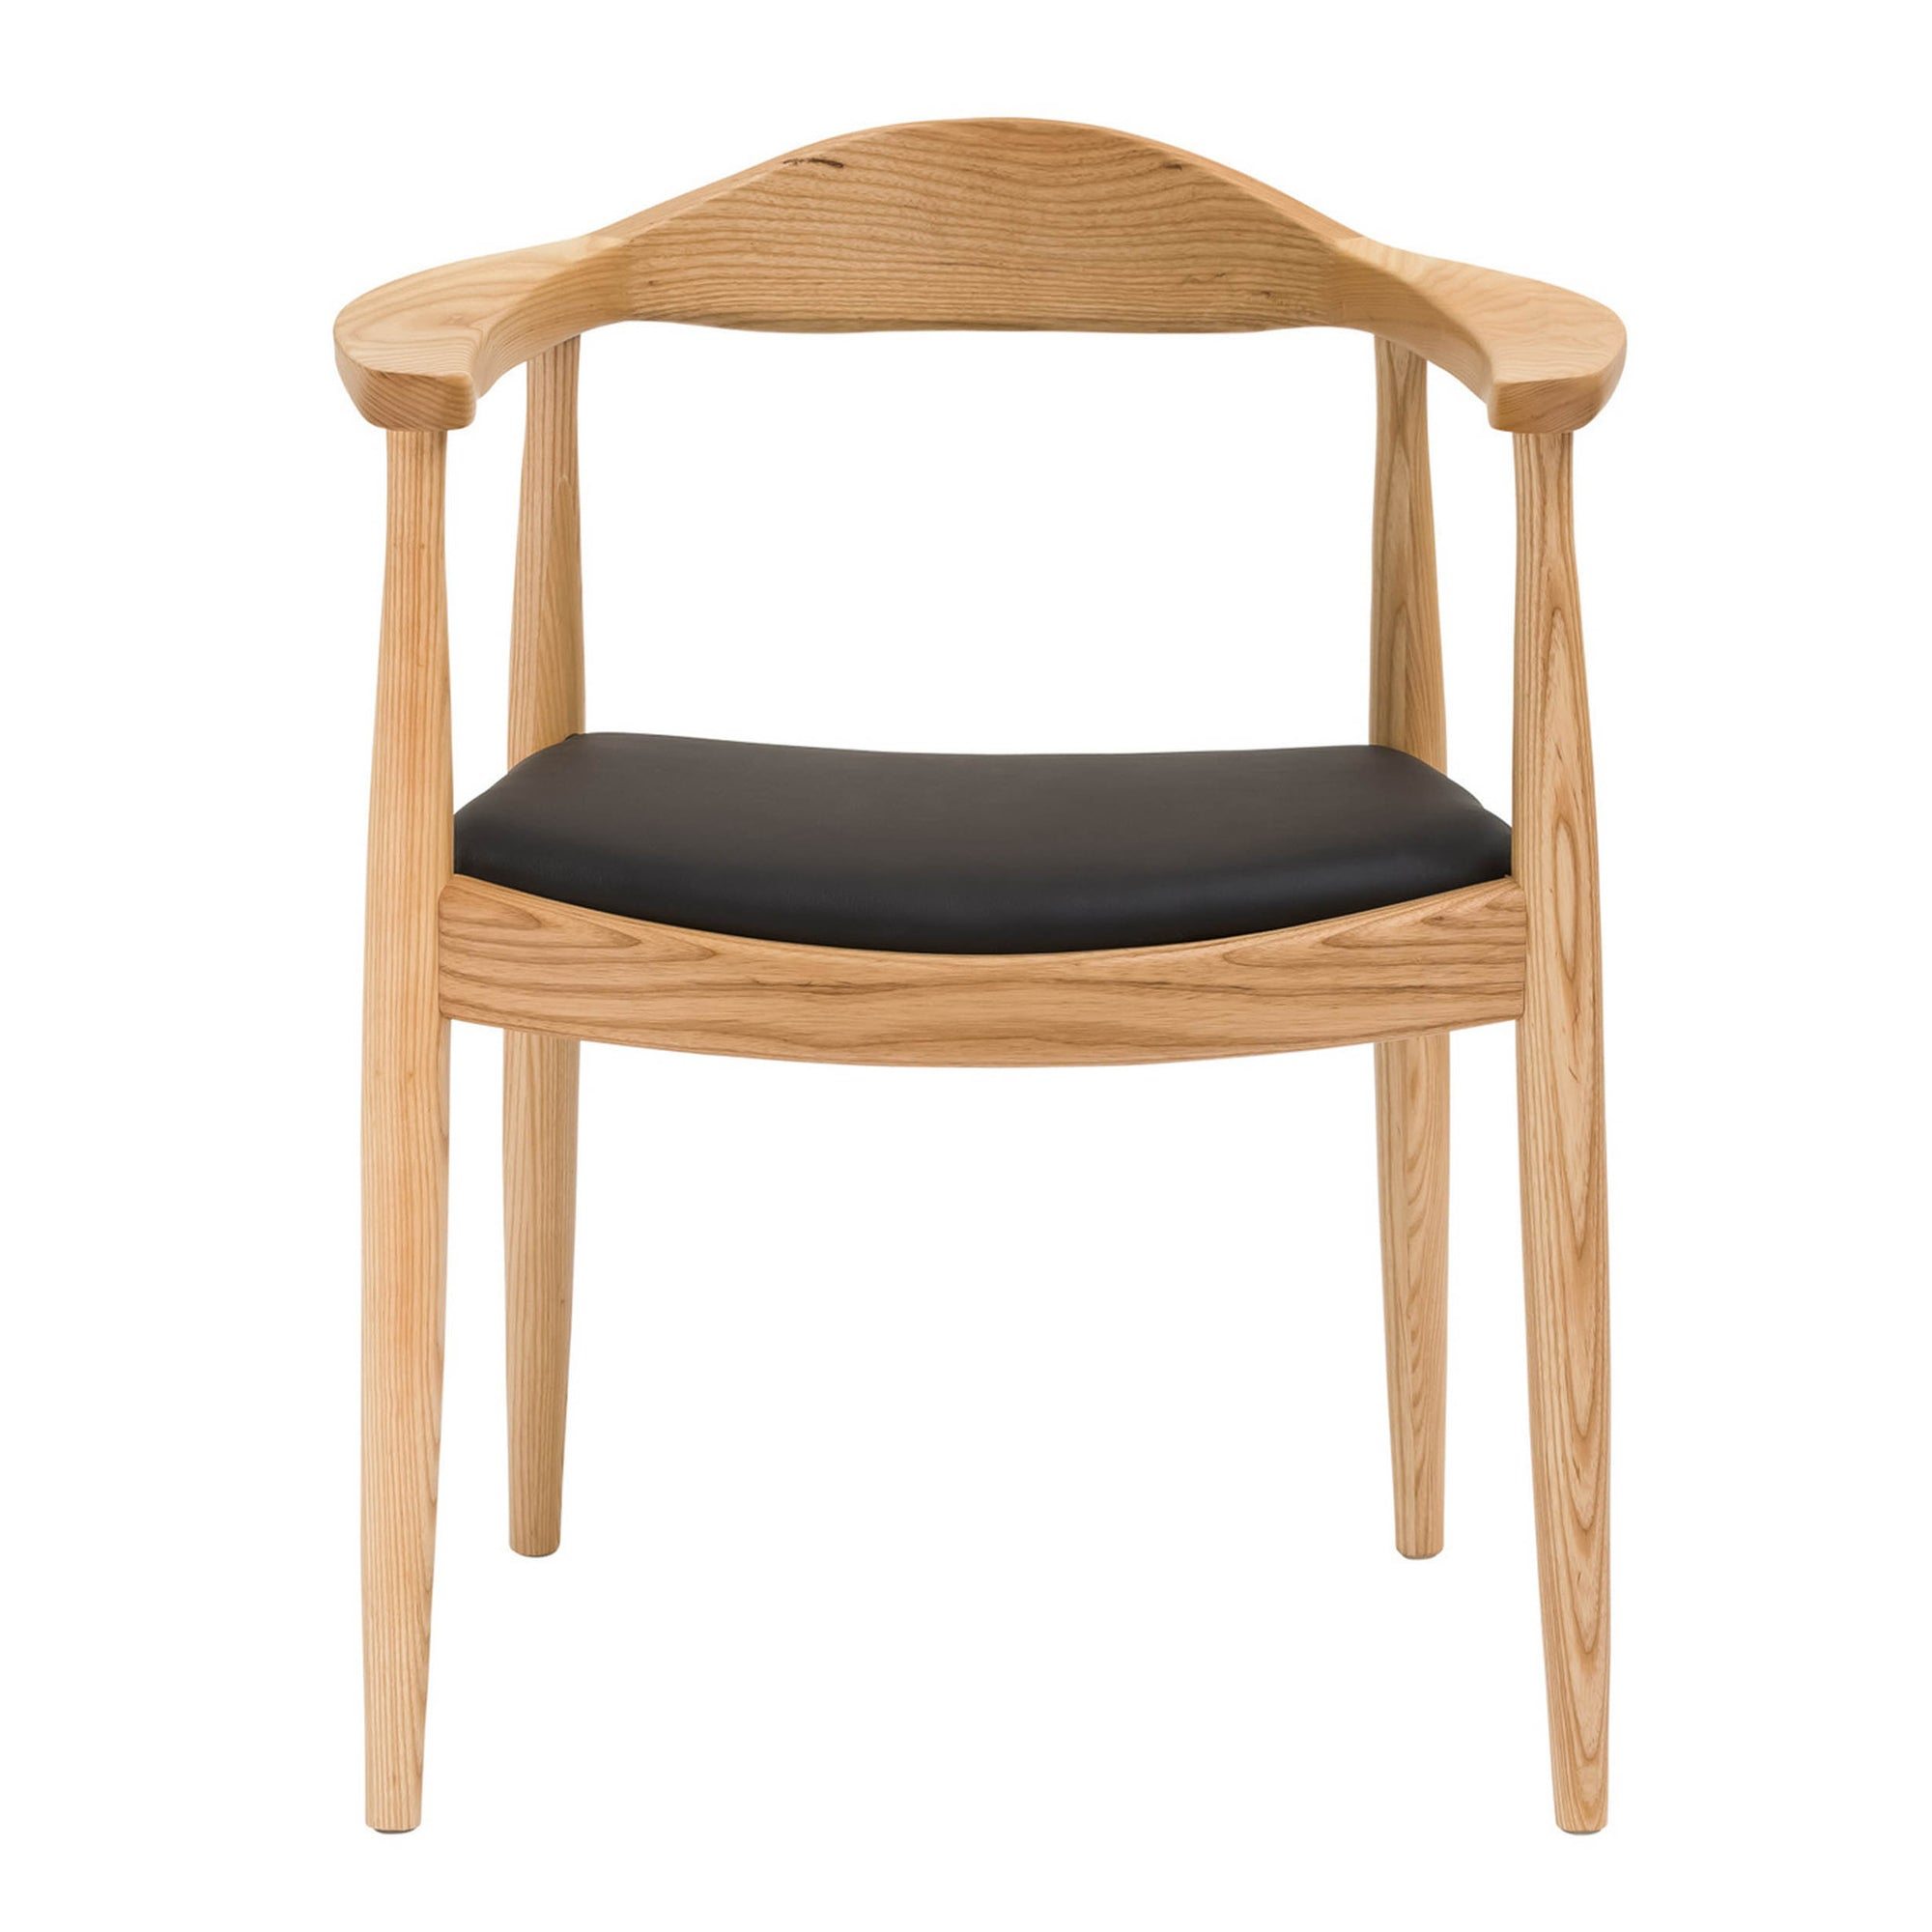 Chair - Dining Chair Solid Ash Wood And Genuin Leather  HW 00322N